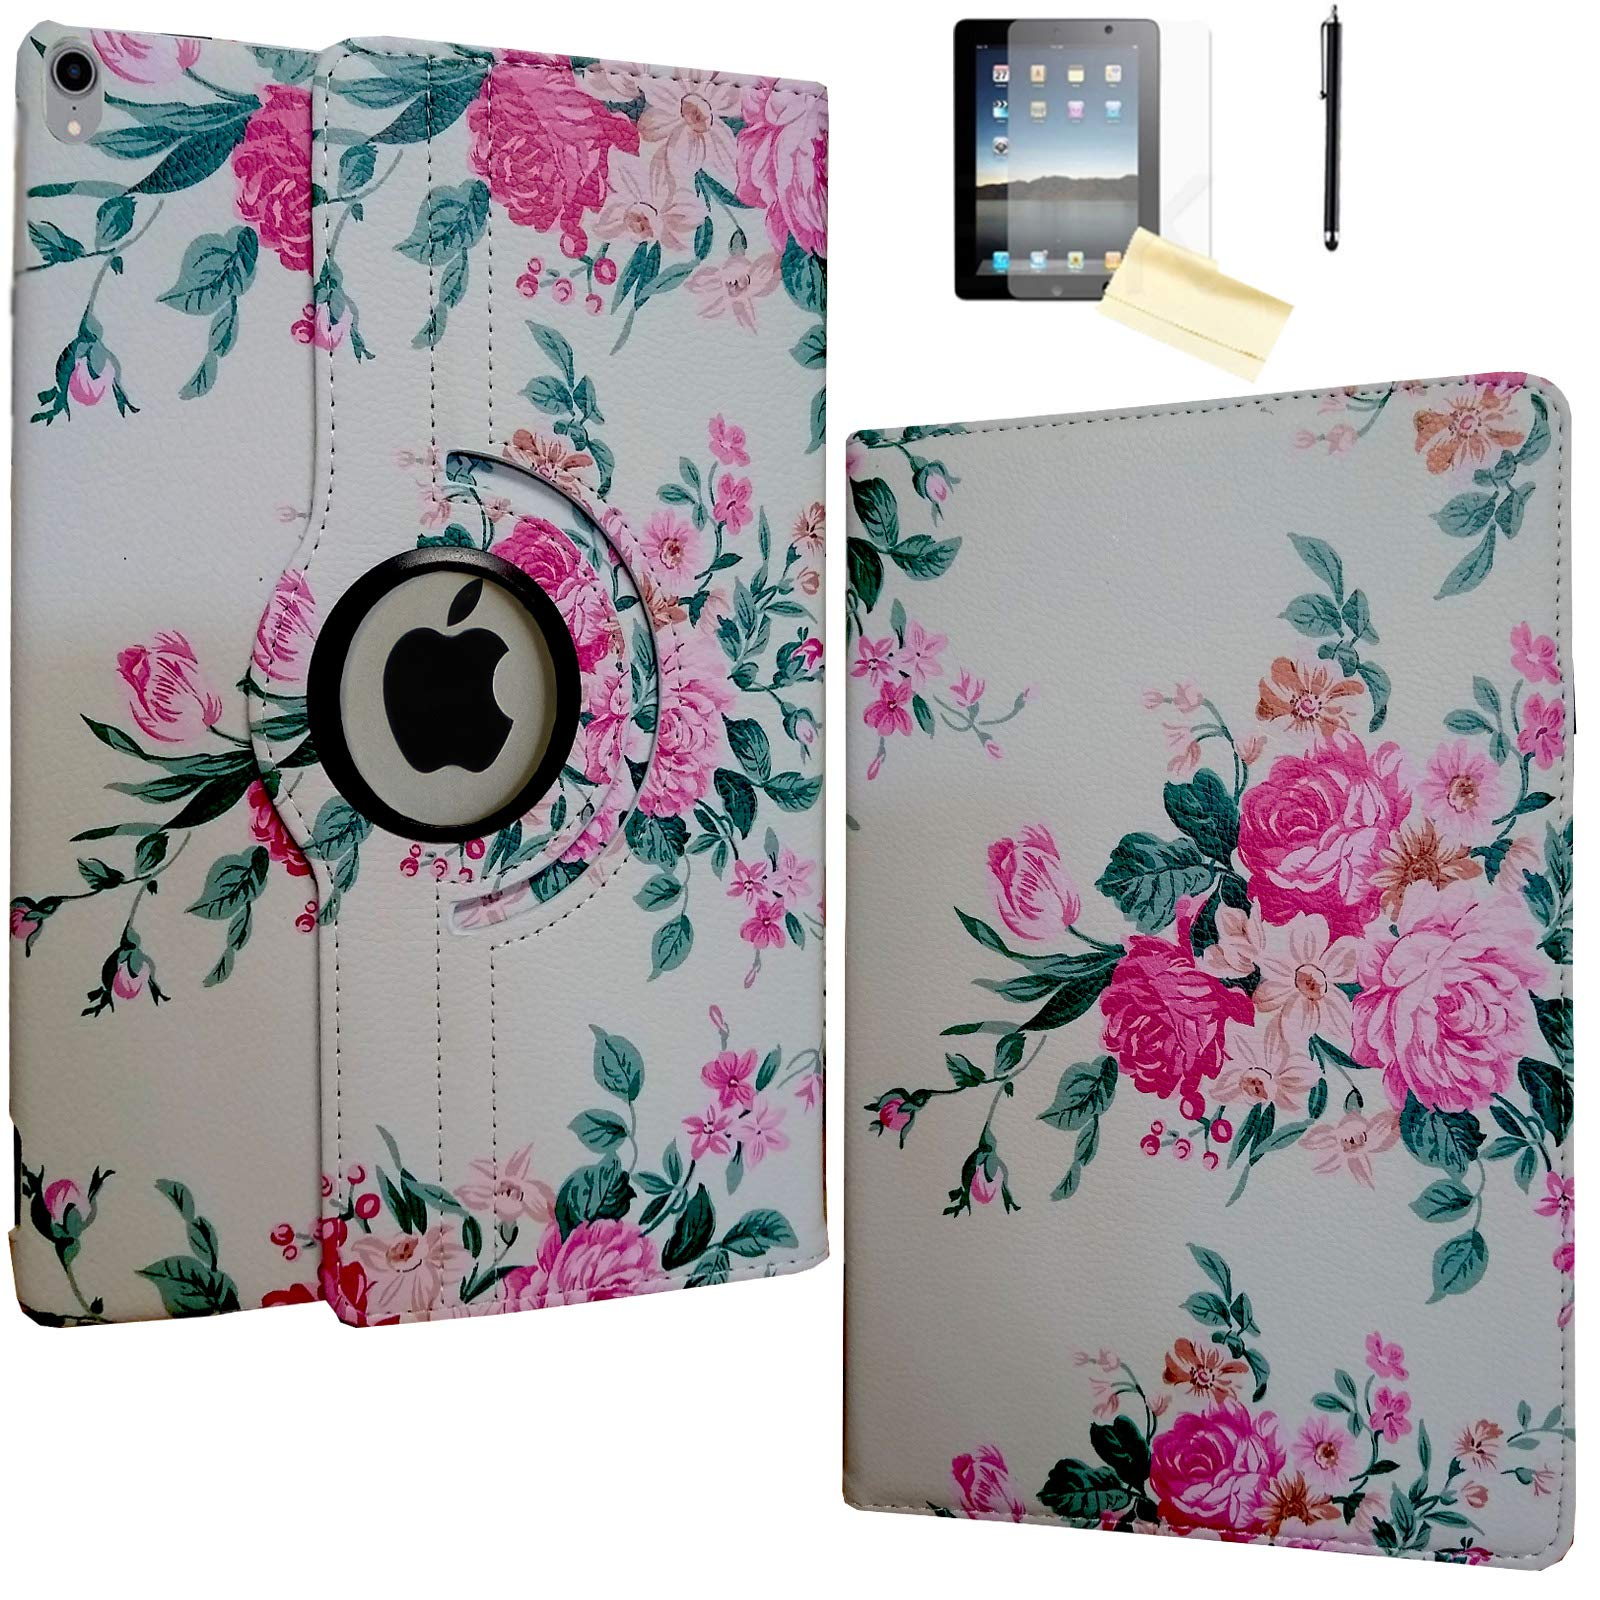 JYtrend Case for iPad Pro 11 Inch 2018, [Support Pencil Charging] Rotating Stand Smart Case Magnetic Auto Wake Up/Sleep Cover for iPad Pro 11 Model A2013 A1980 A1979 A1934 (Peony)